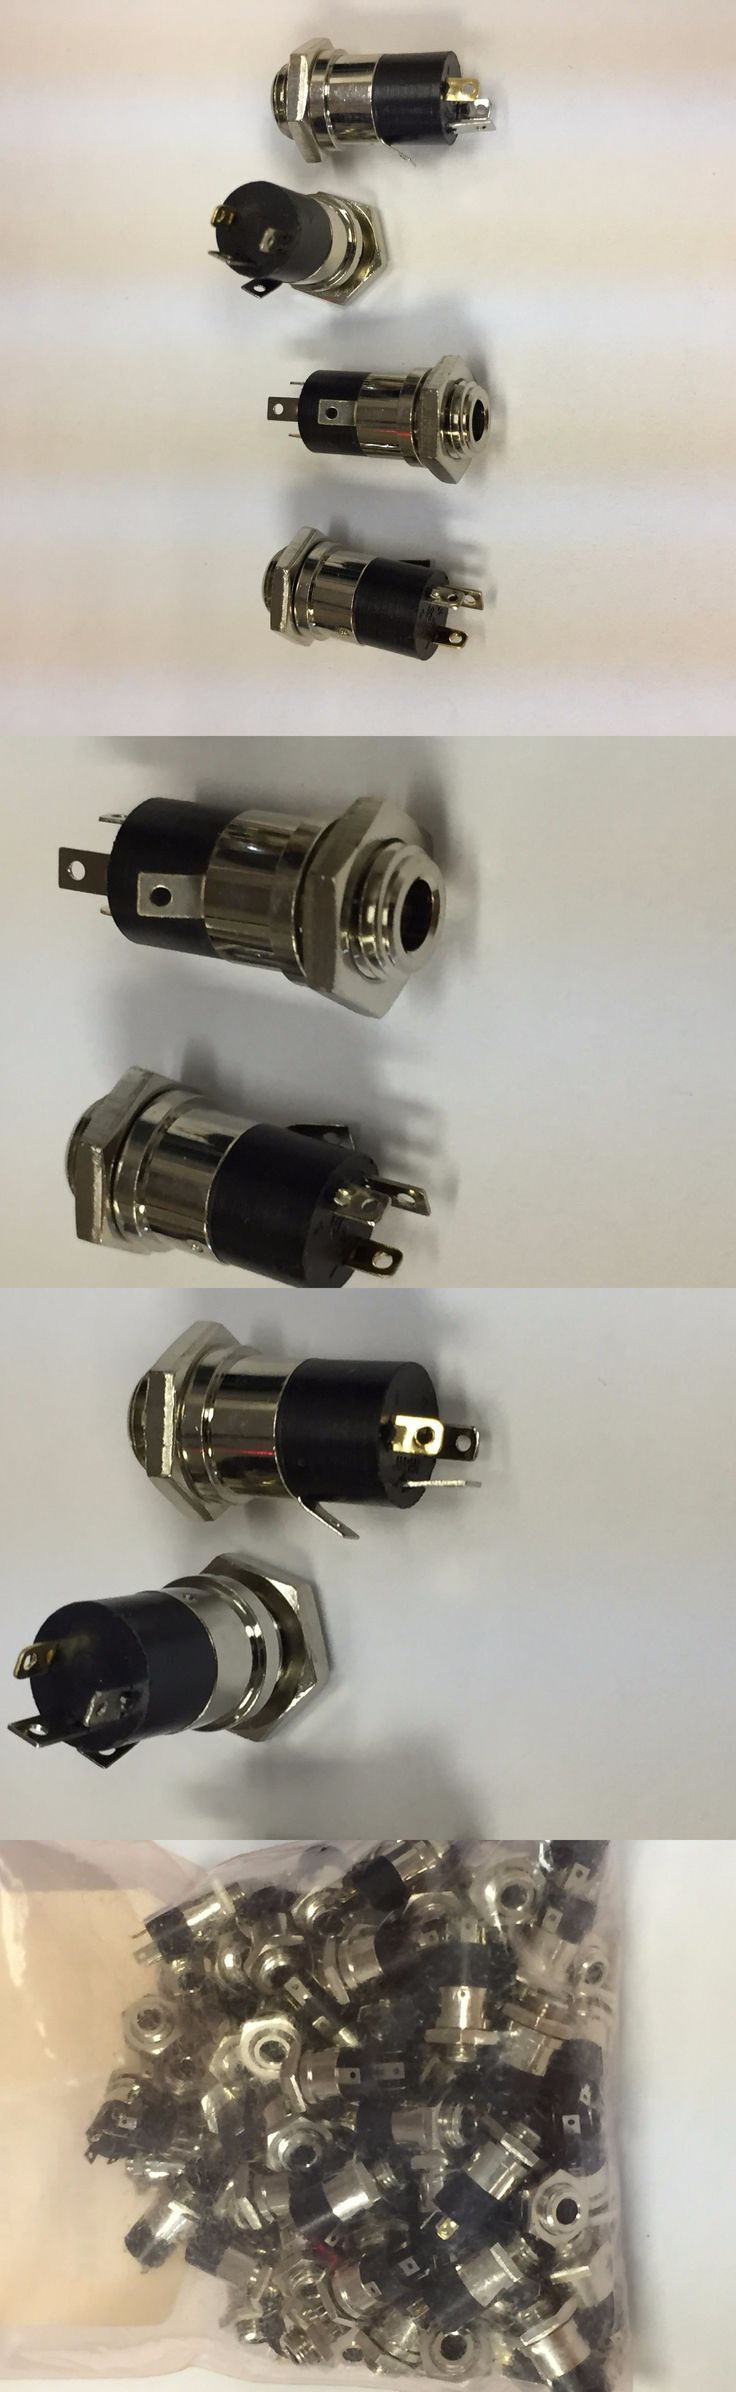 Audio Cable Plugs and Jacks: Sj5-43502Pm Panel Mount Audio Jack - 4 Connector 3.5 Mm Cuiinc. Lot Of 90 -> BUY IT NOW ONLY: $40 on eBay!